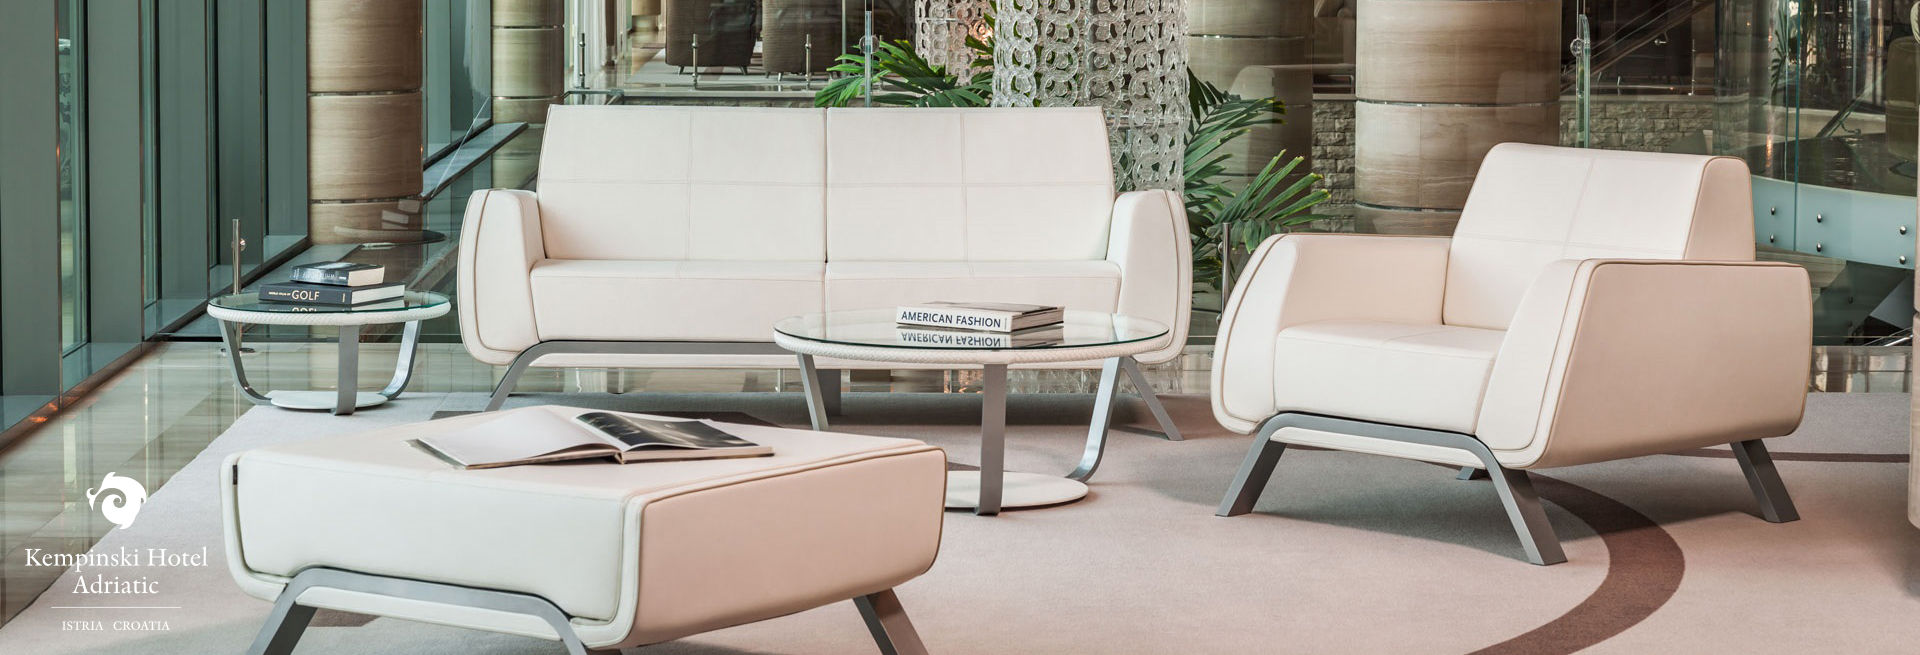 Merveilleux Sofa : Boxmark XTREME Collection U2013 Exclusive Leather Furniture For Interior  And Exterior.